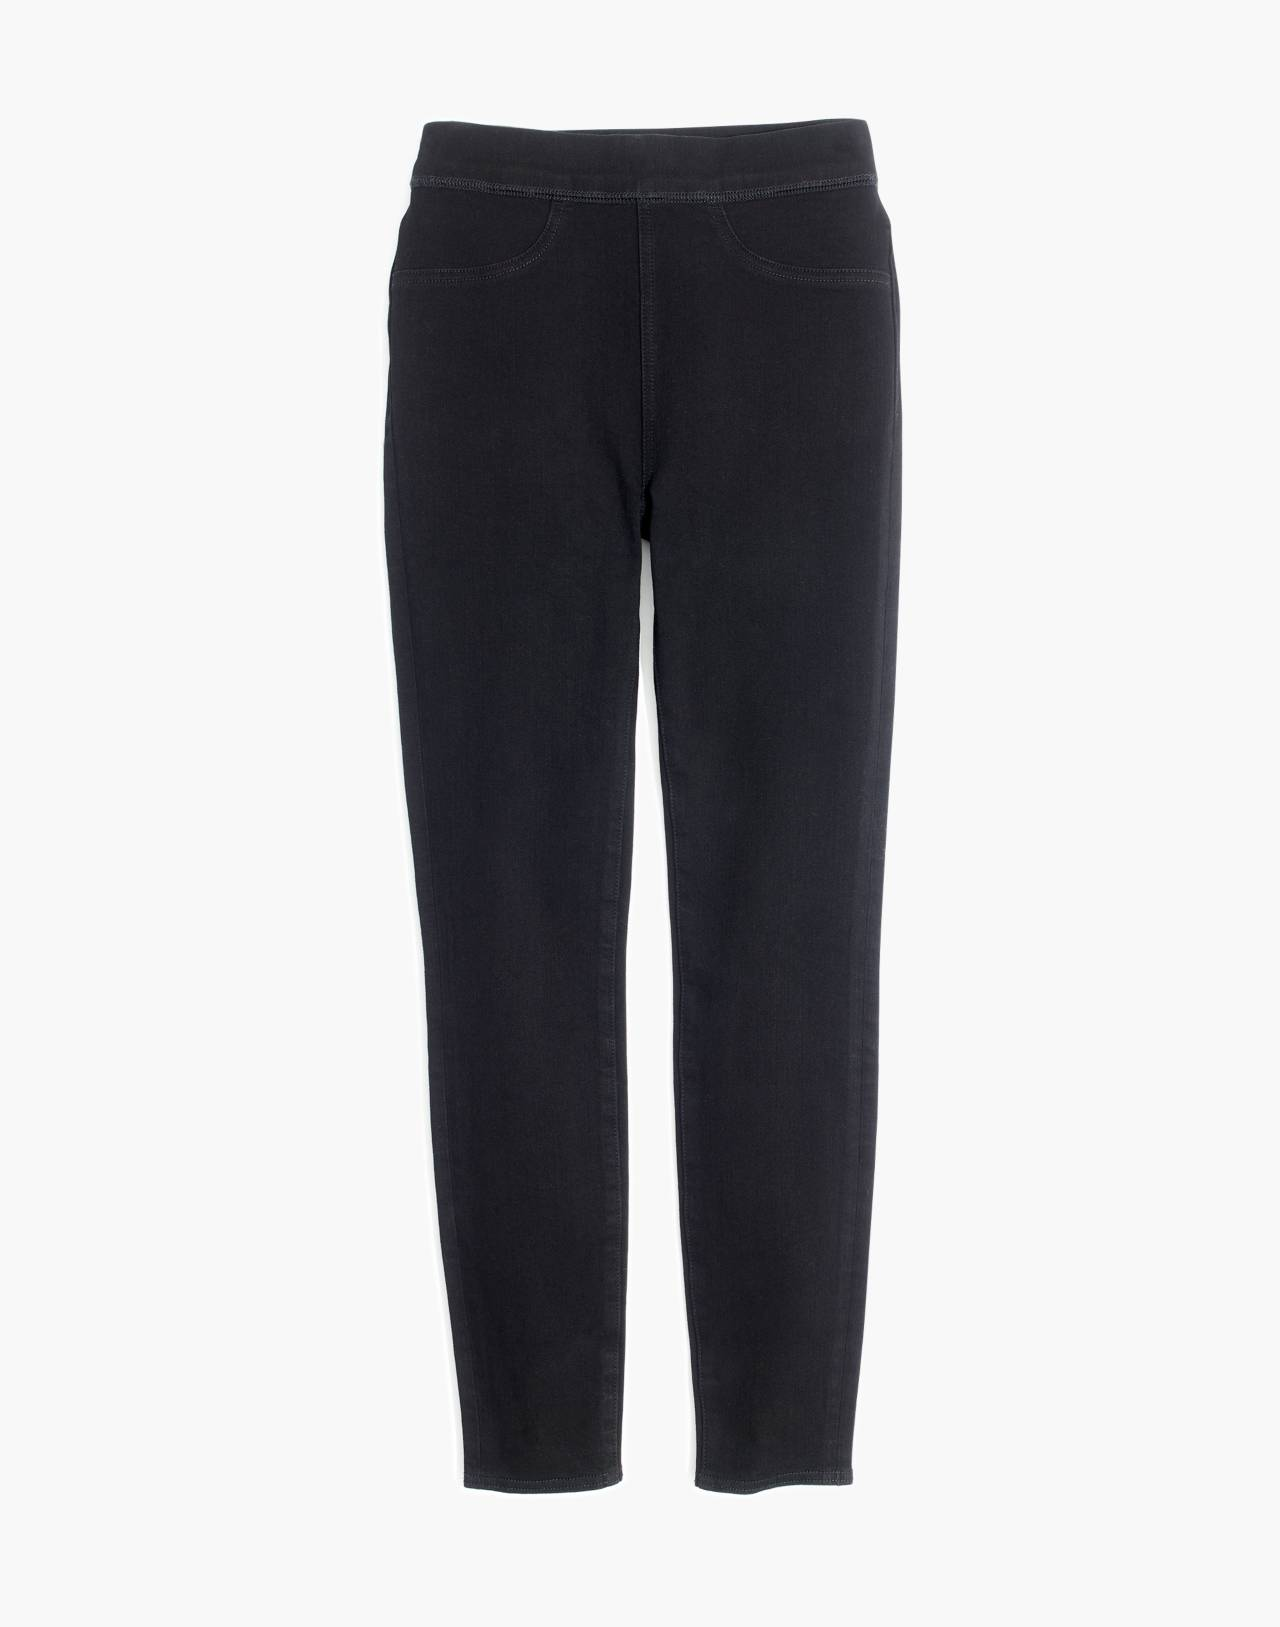 Pull-On Jeans in Black Frost in black frost image 4